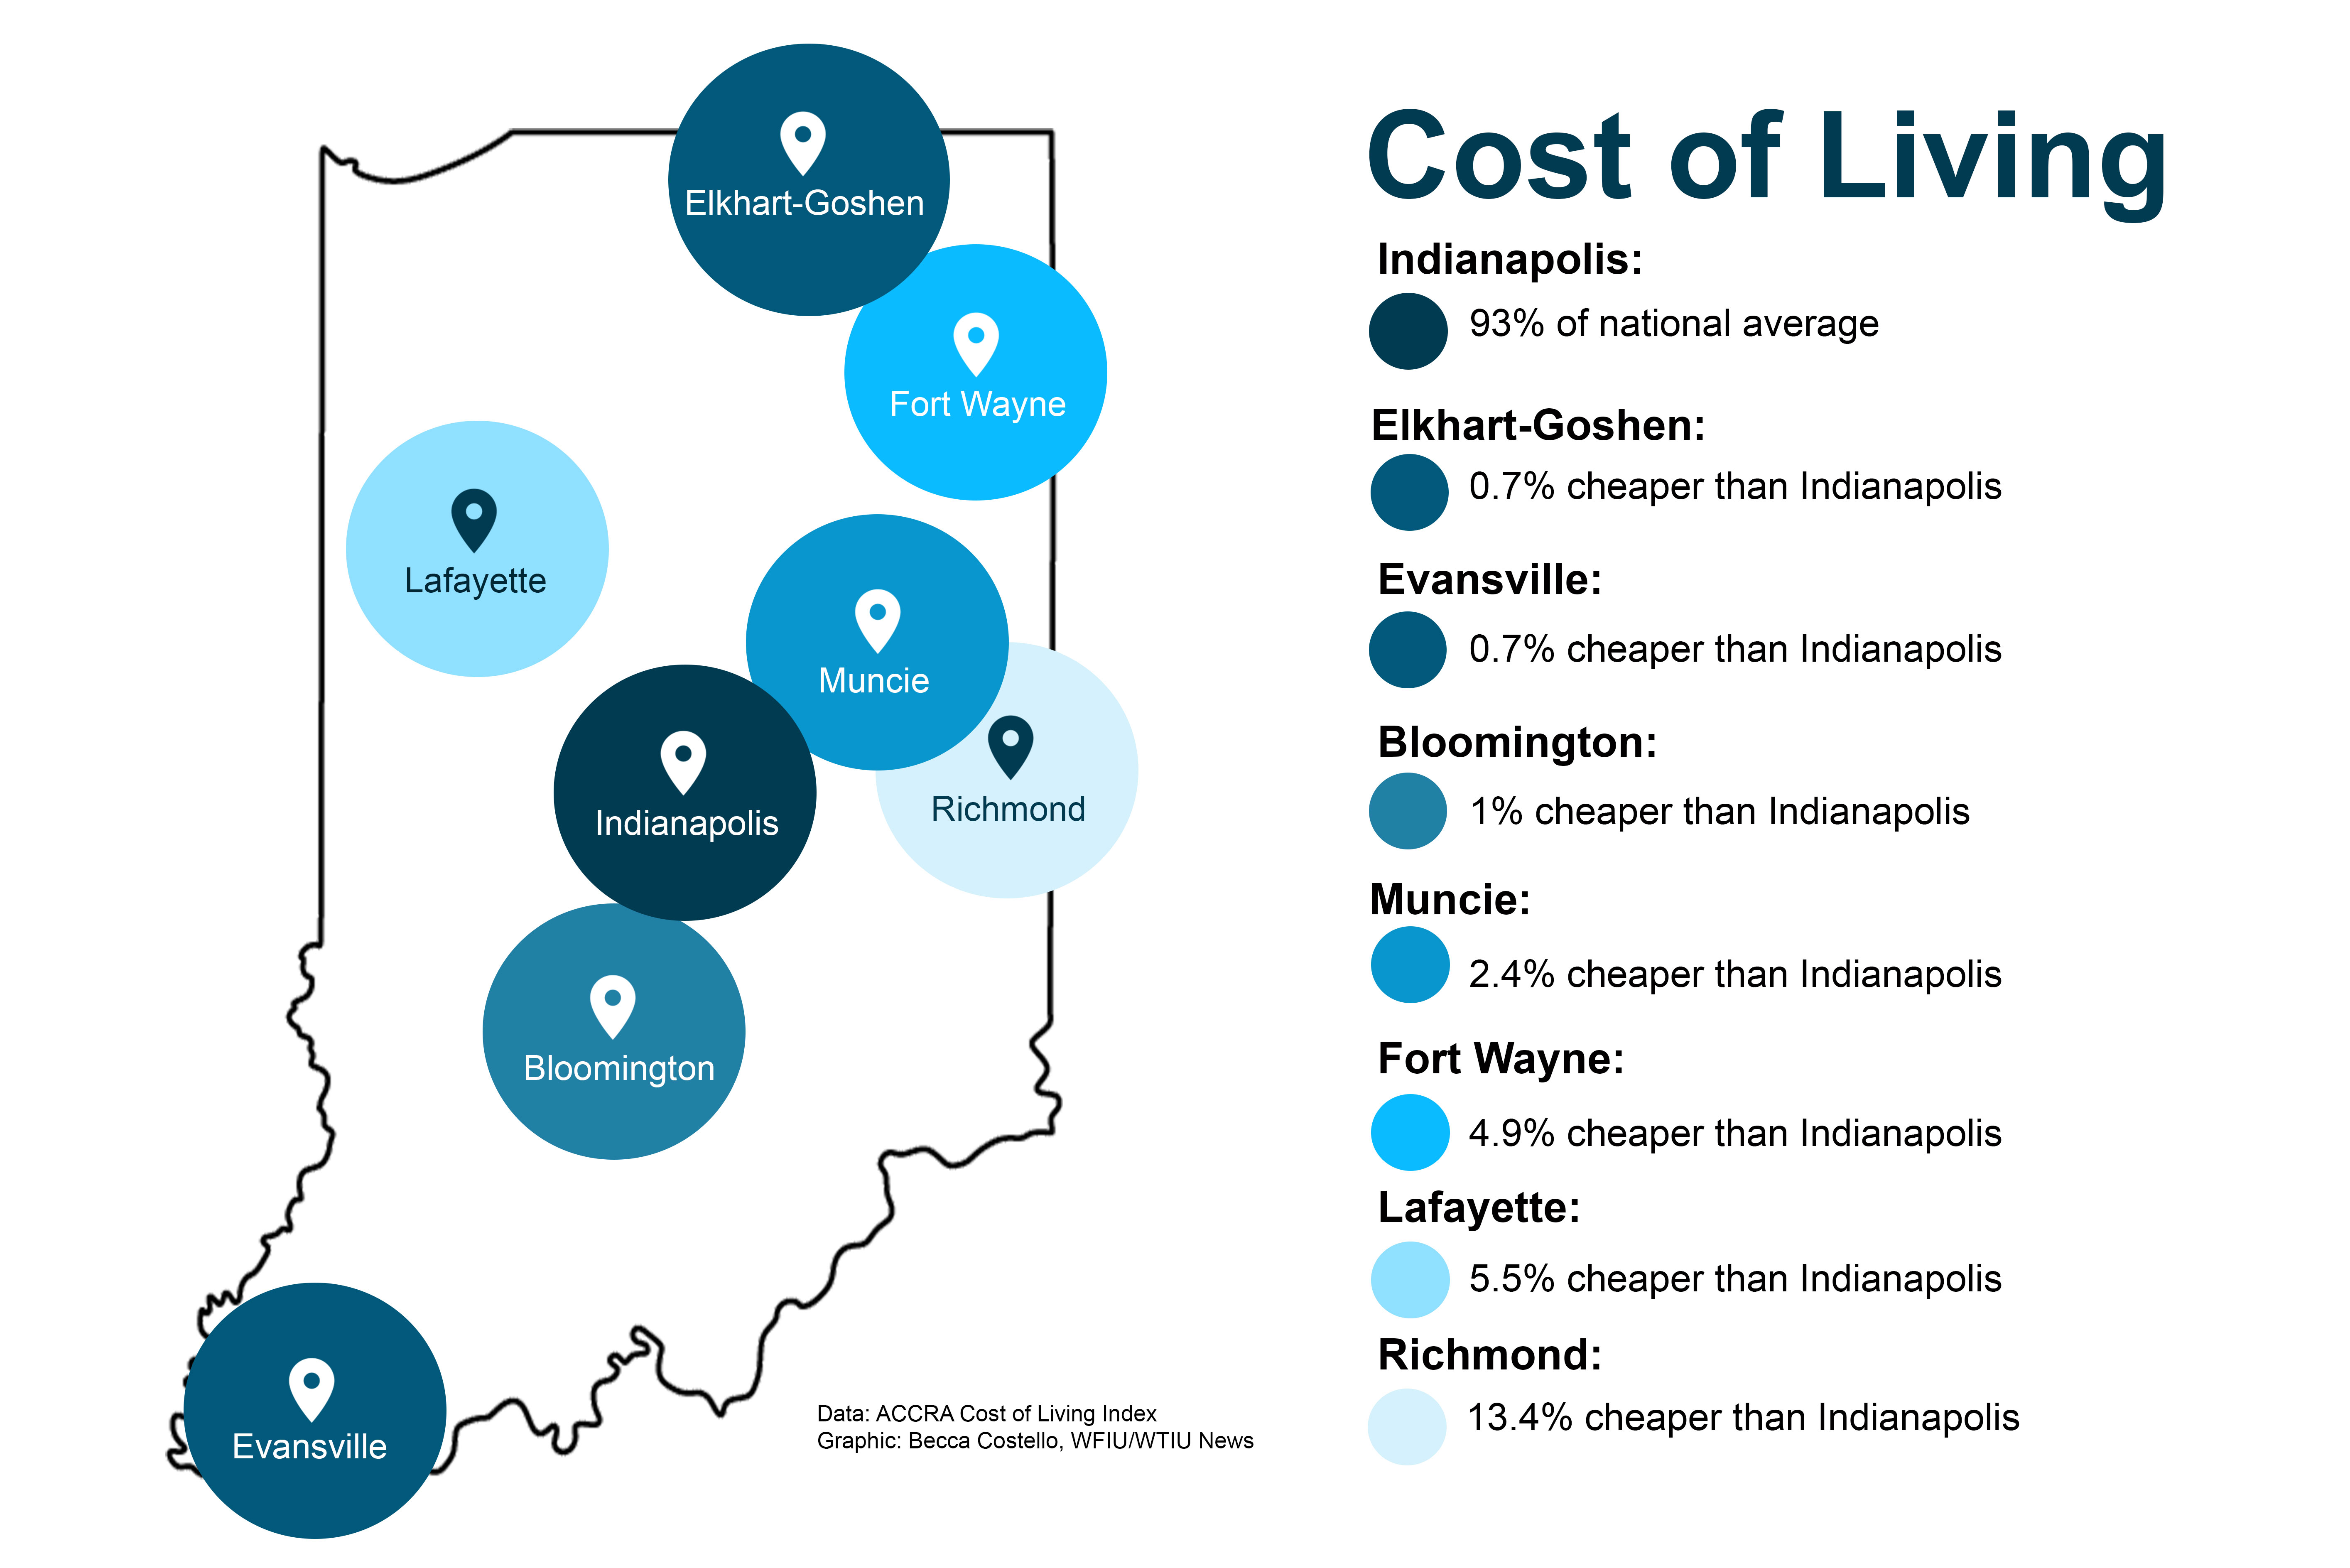 indiana-cost-of-living-map-typo-fixed.jpg